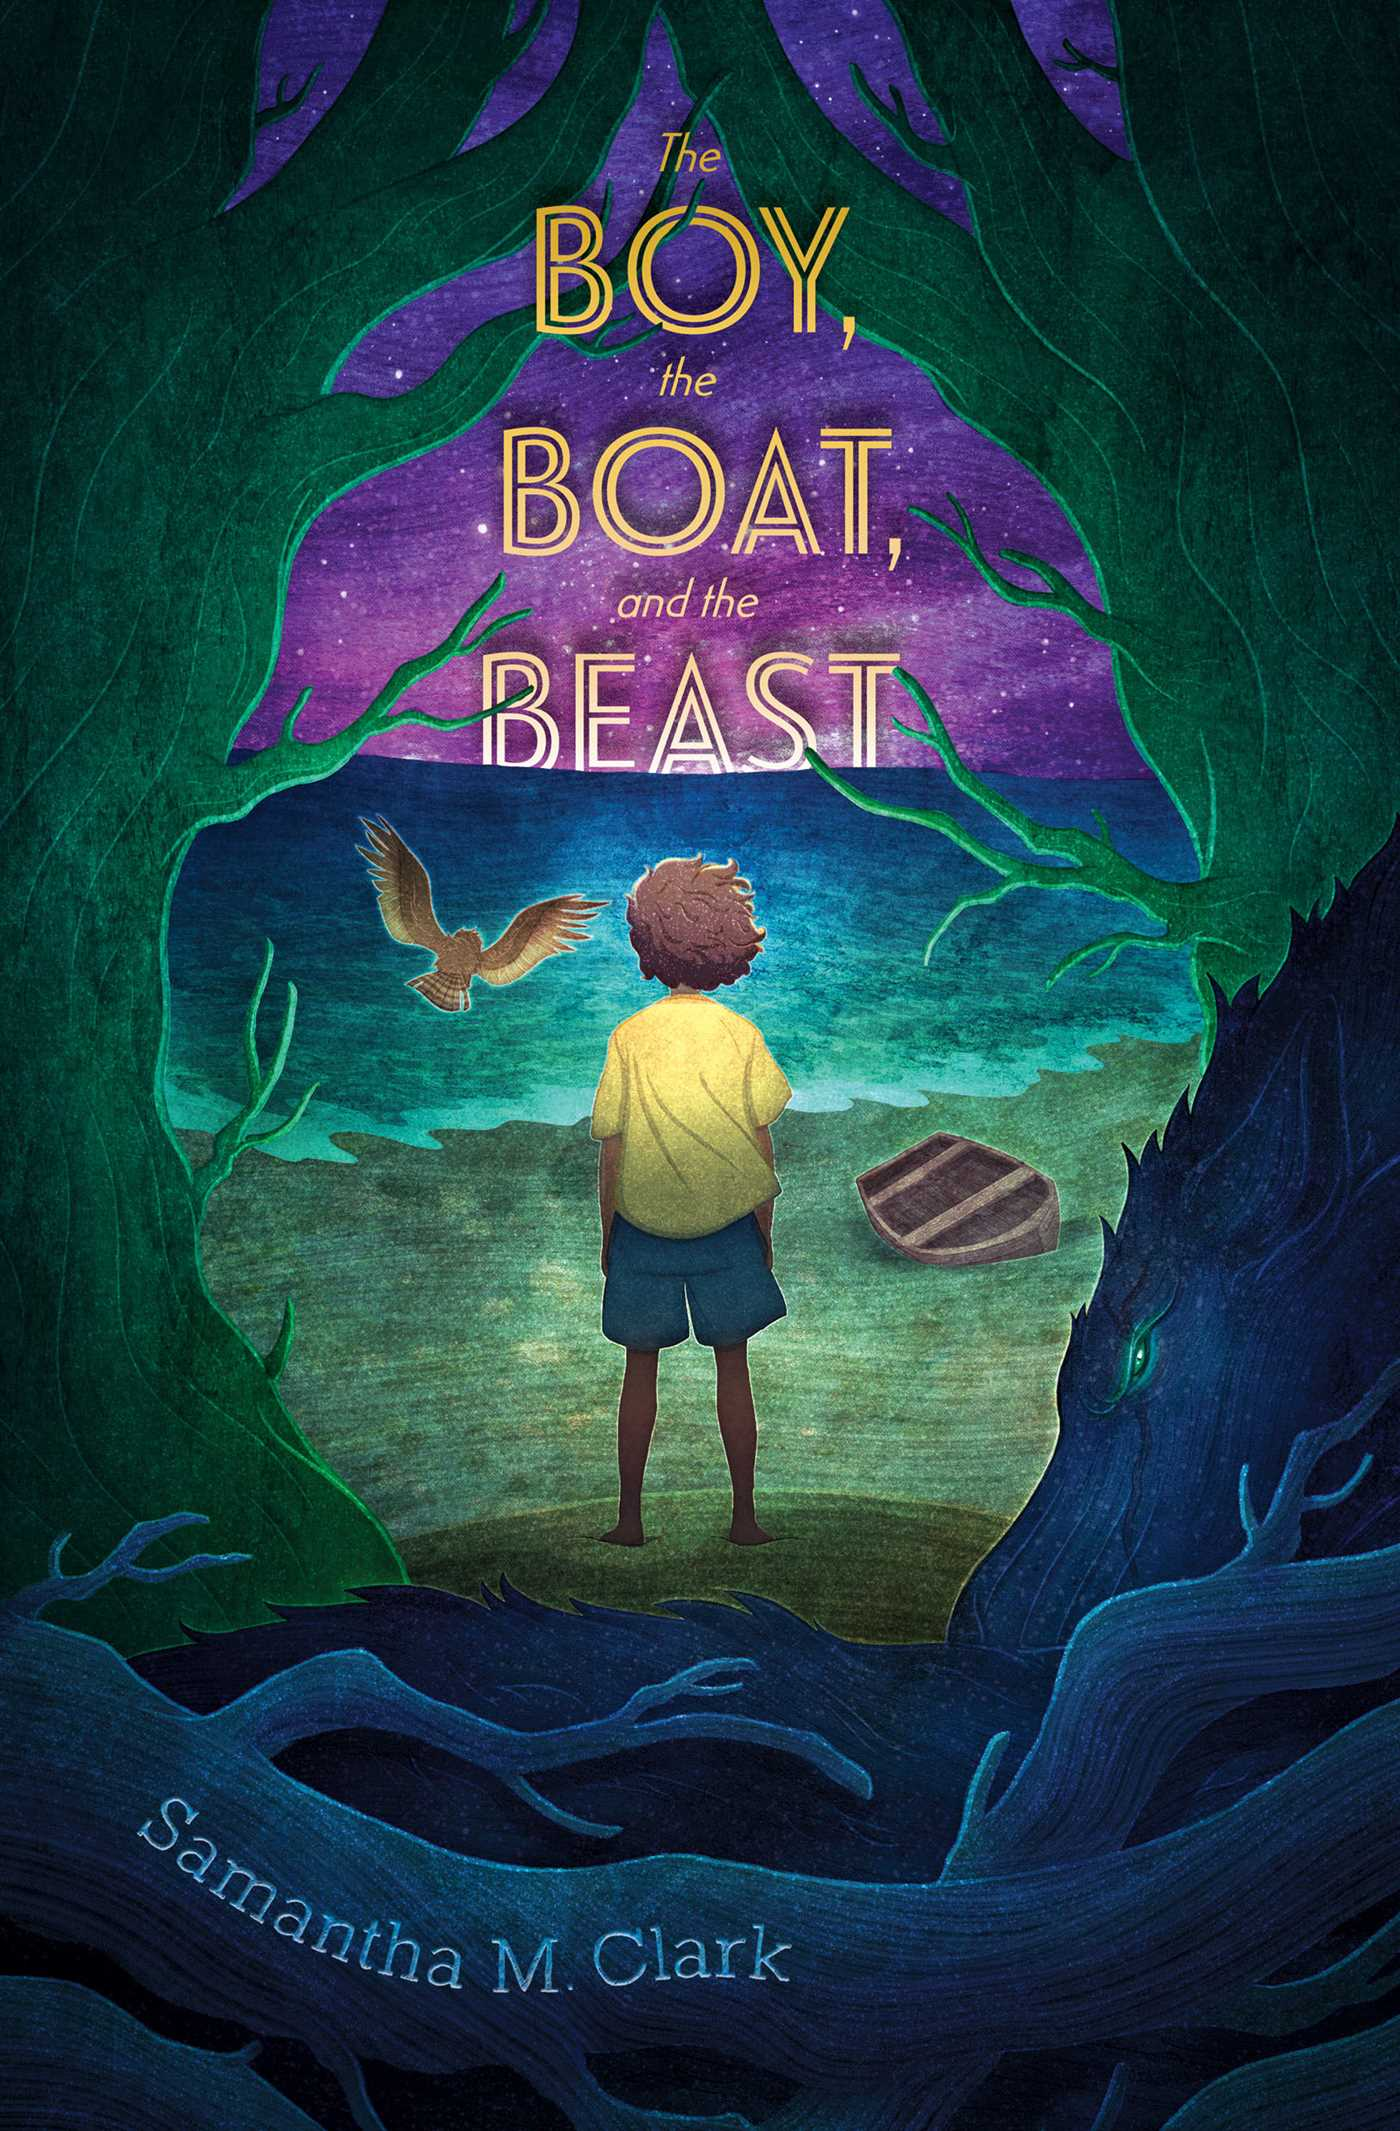 The boy the boat and the beast 9781534412552 hr